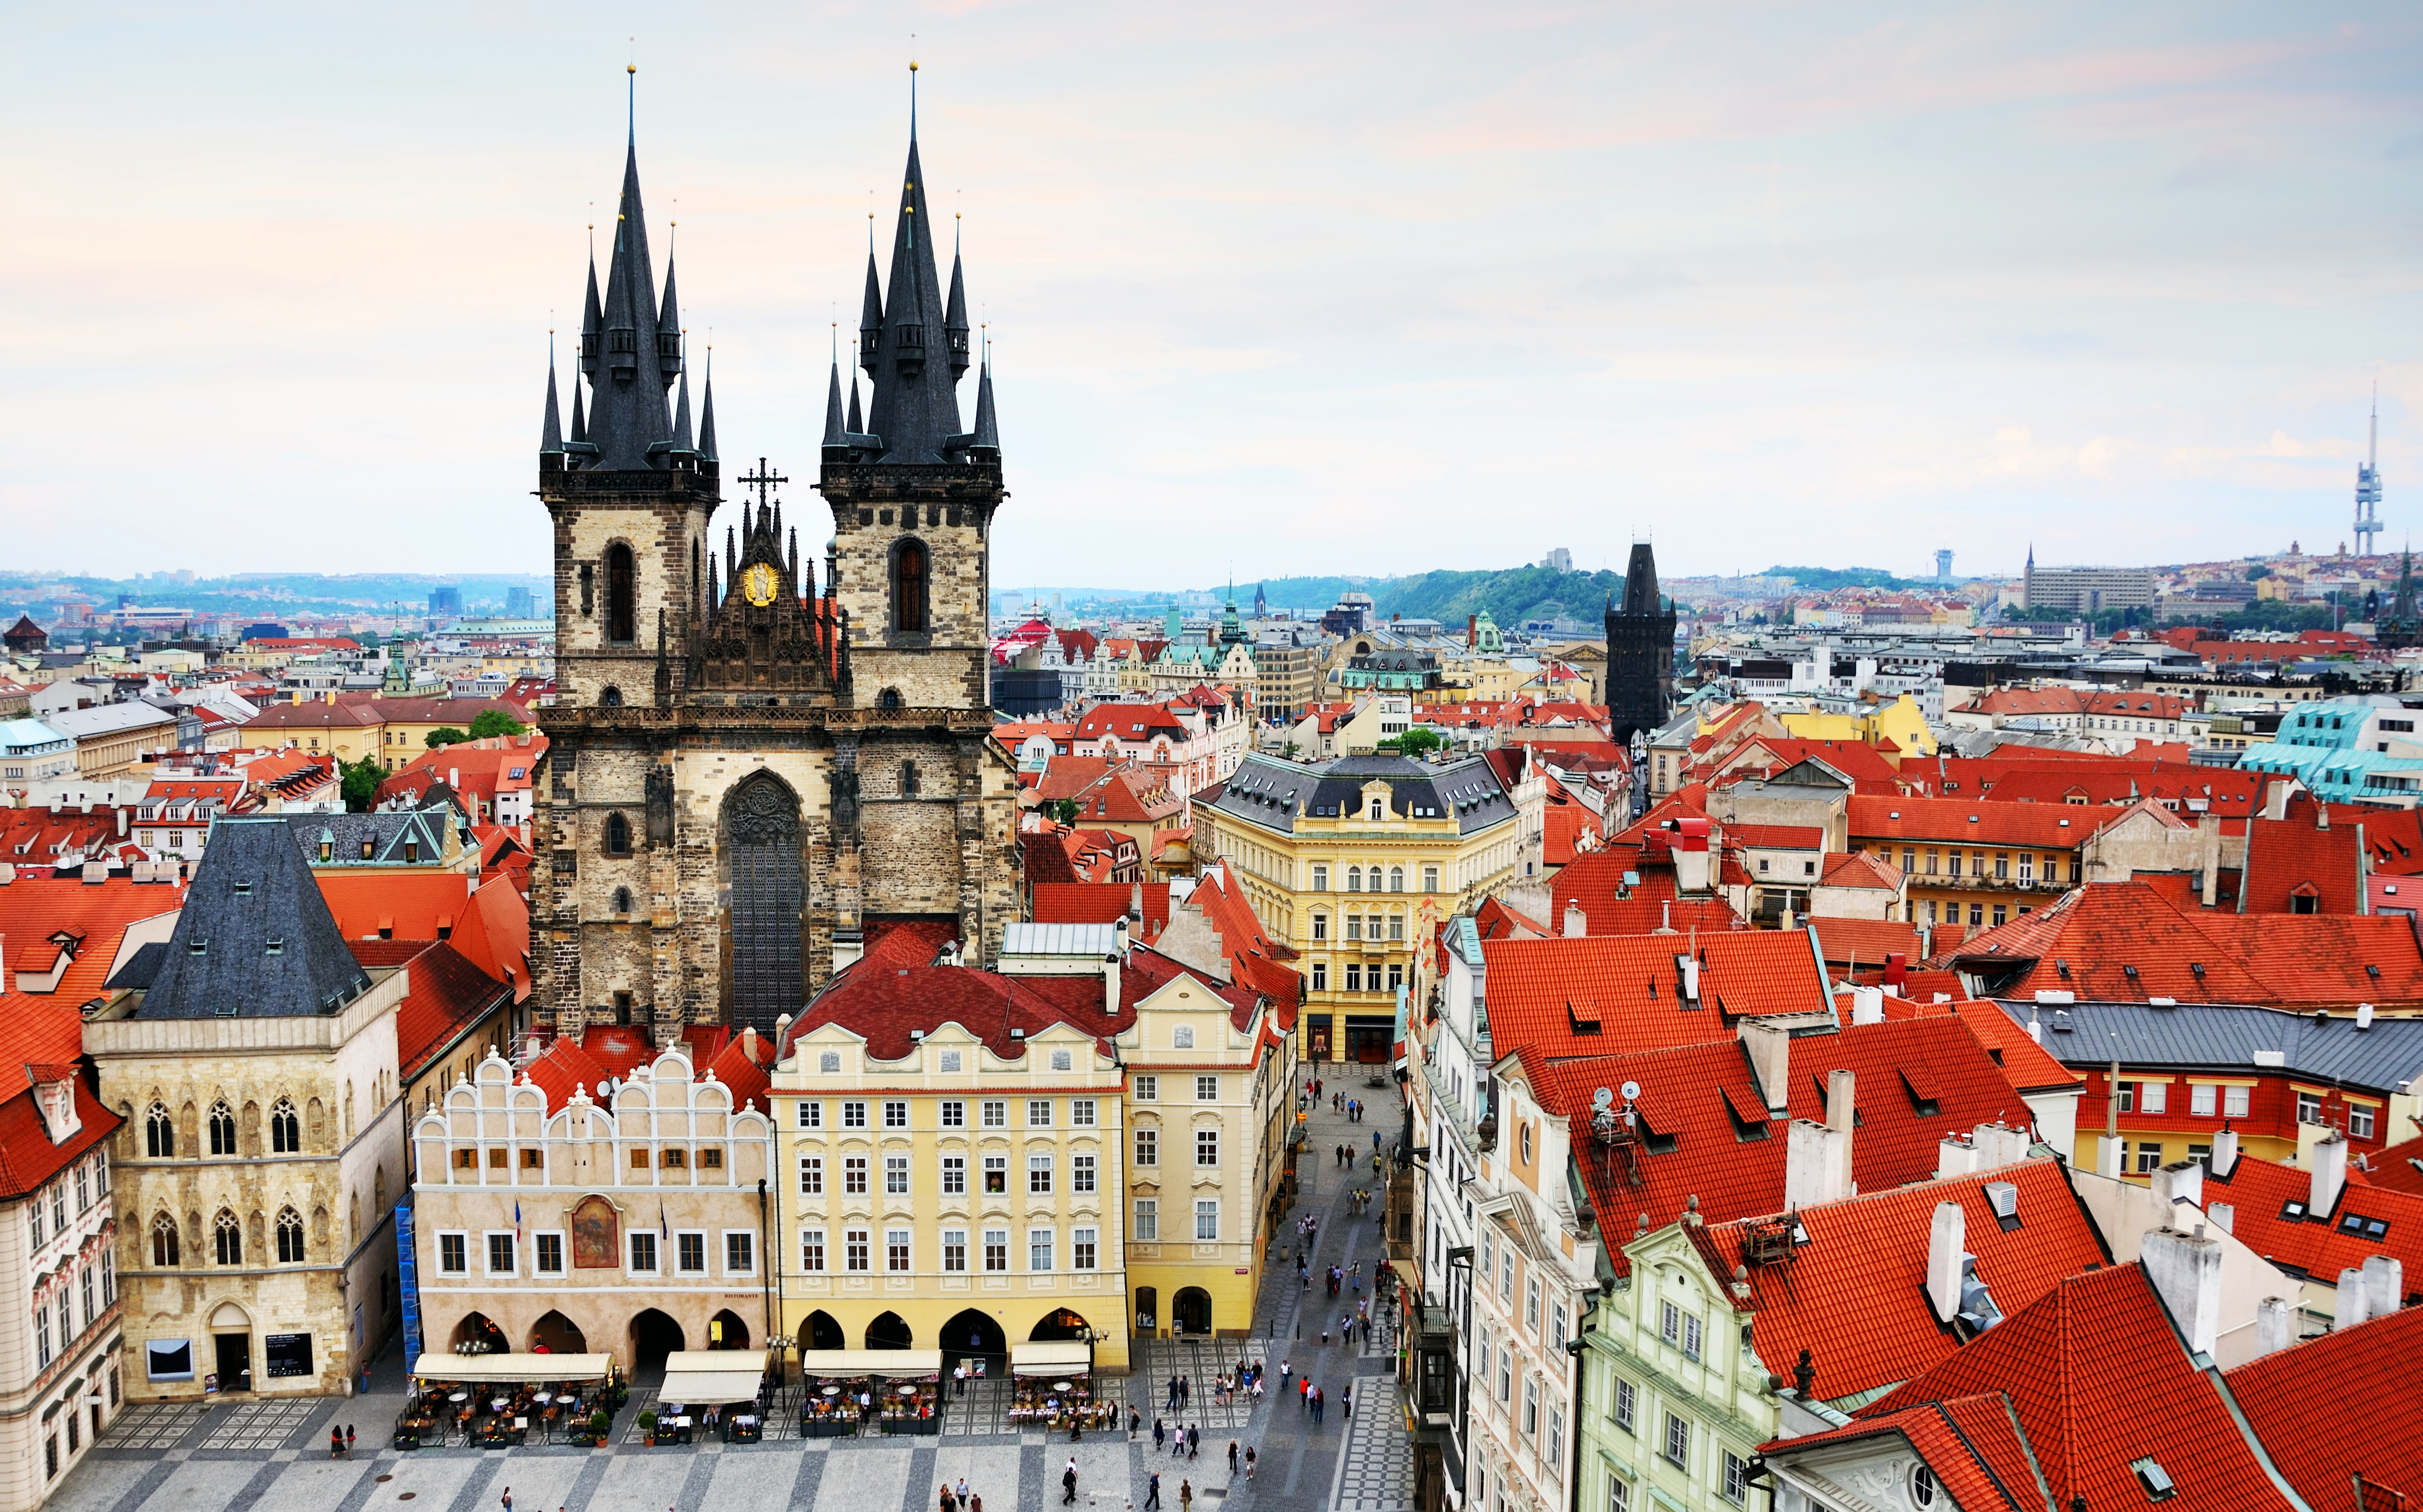 Panoramic view of the Old Town Square in Prague, Czech Republic